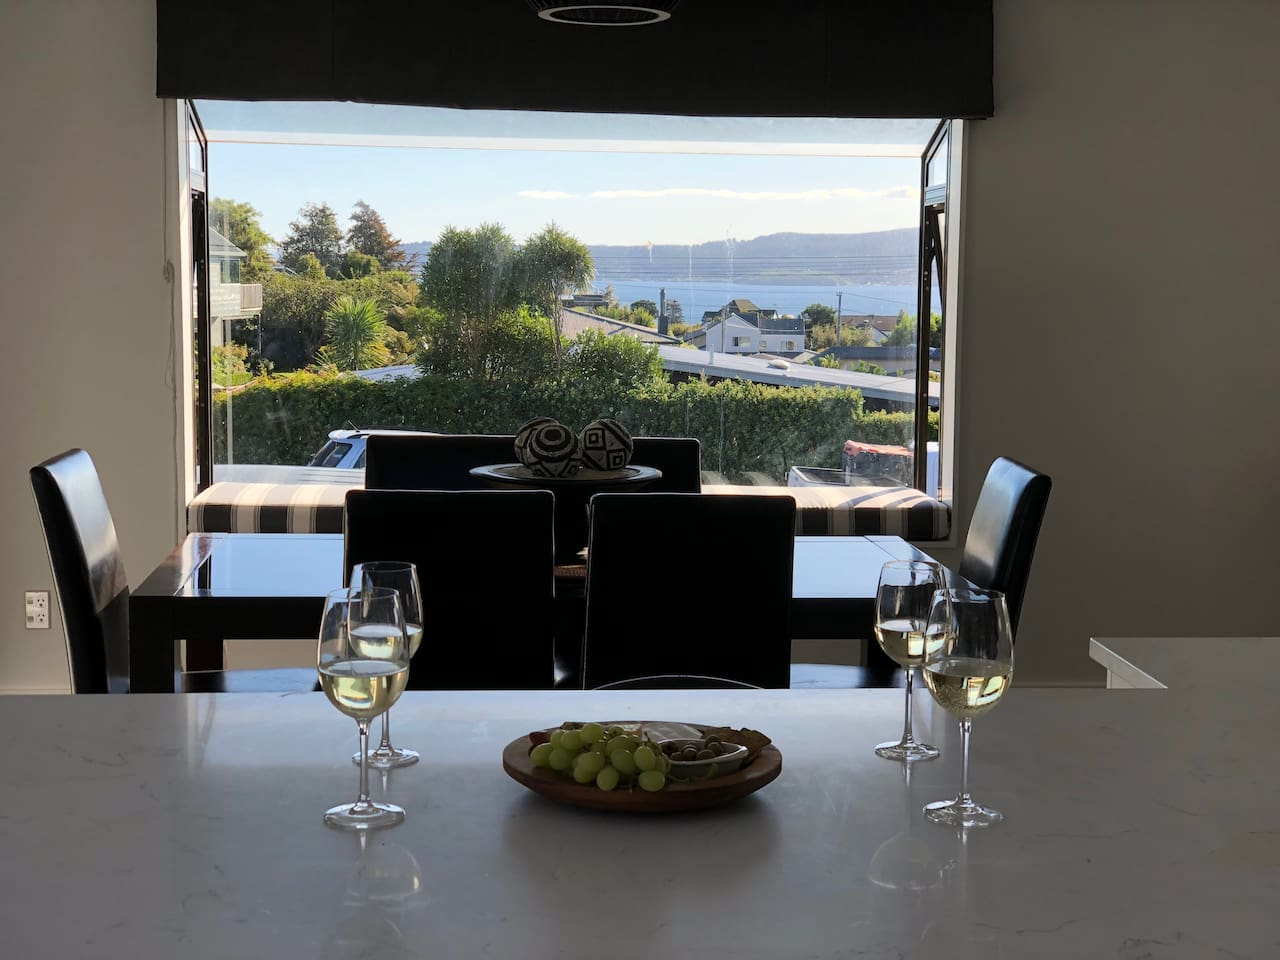 Lake views from the dining area